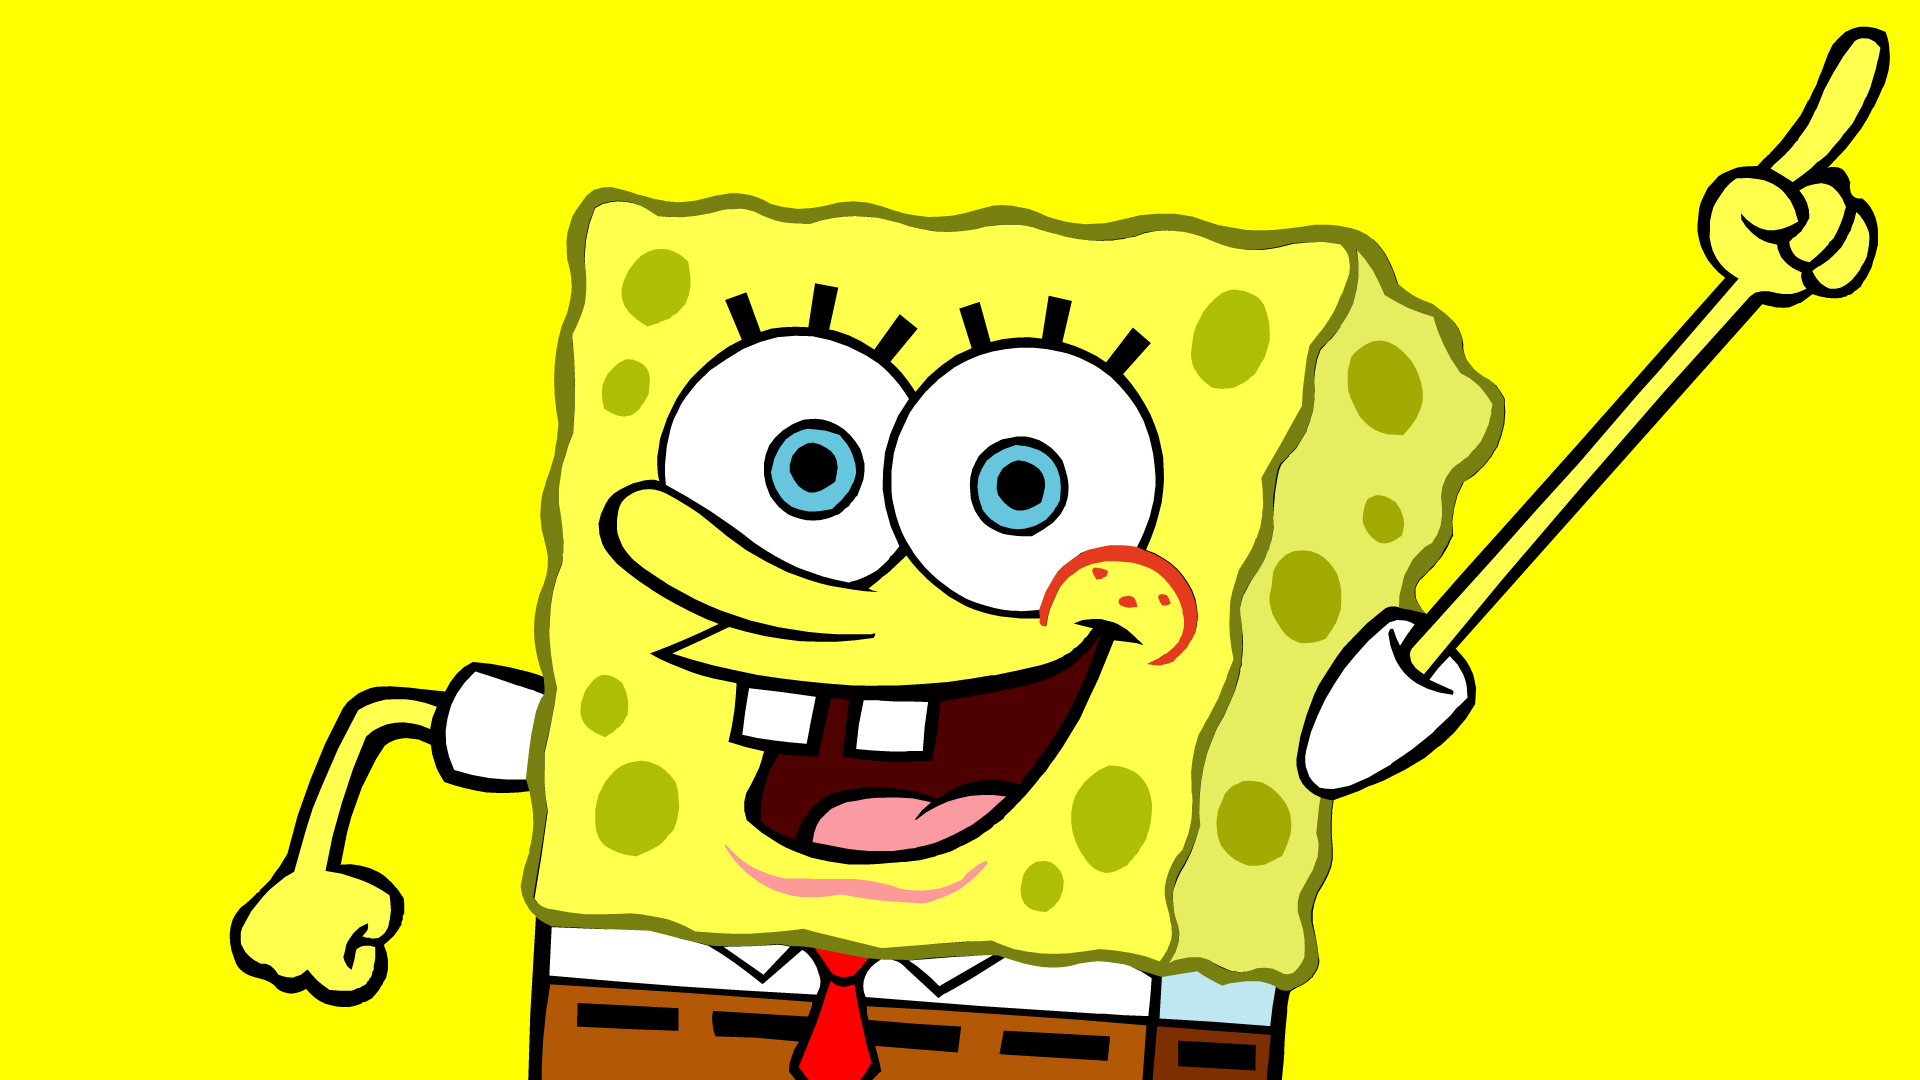 SpongeBob SquarePants wallpapers HD number one